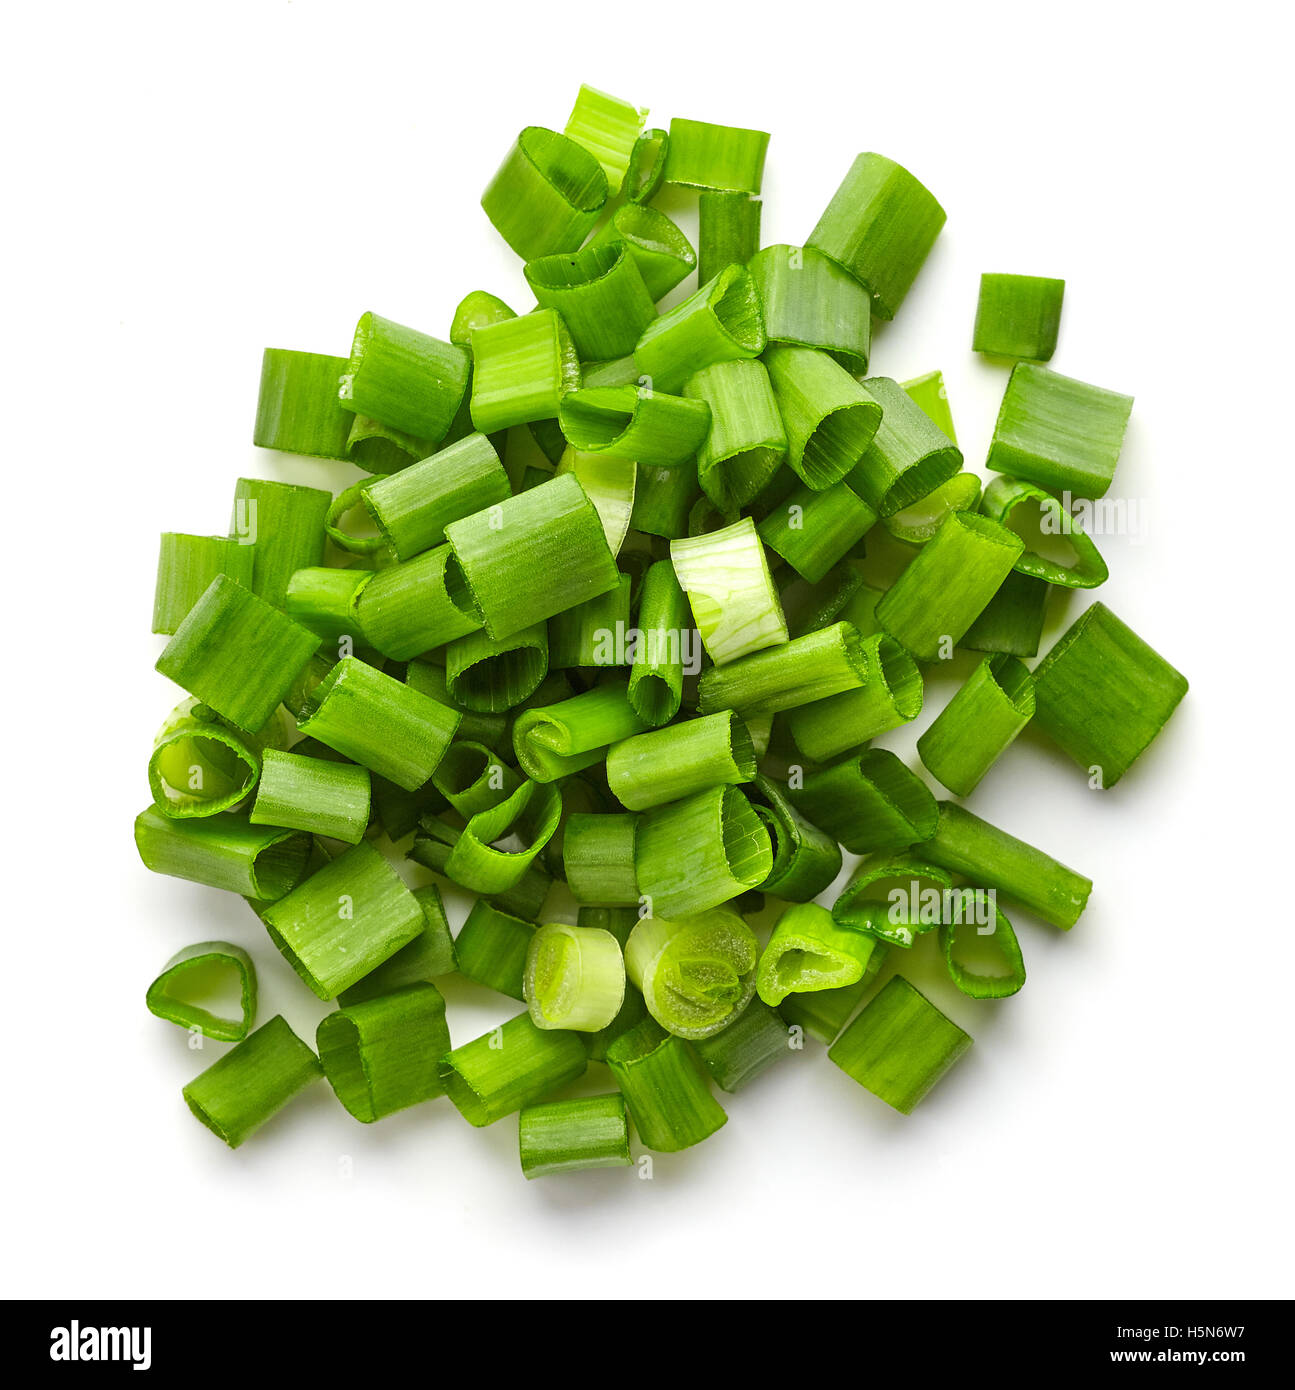 Heap of chopped spring onions isolated on white background, top view - Stock Image